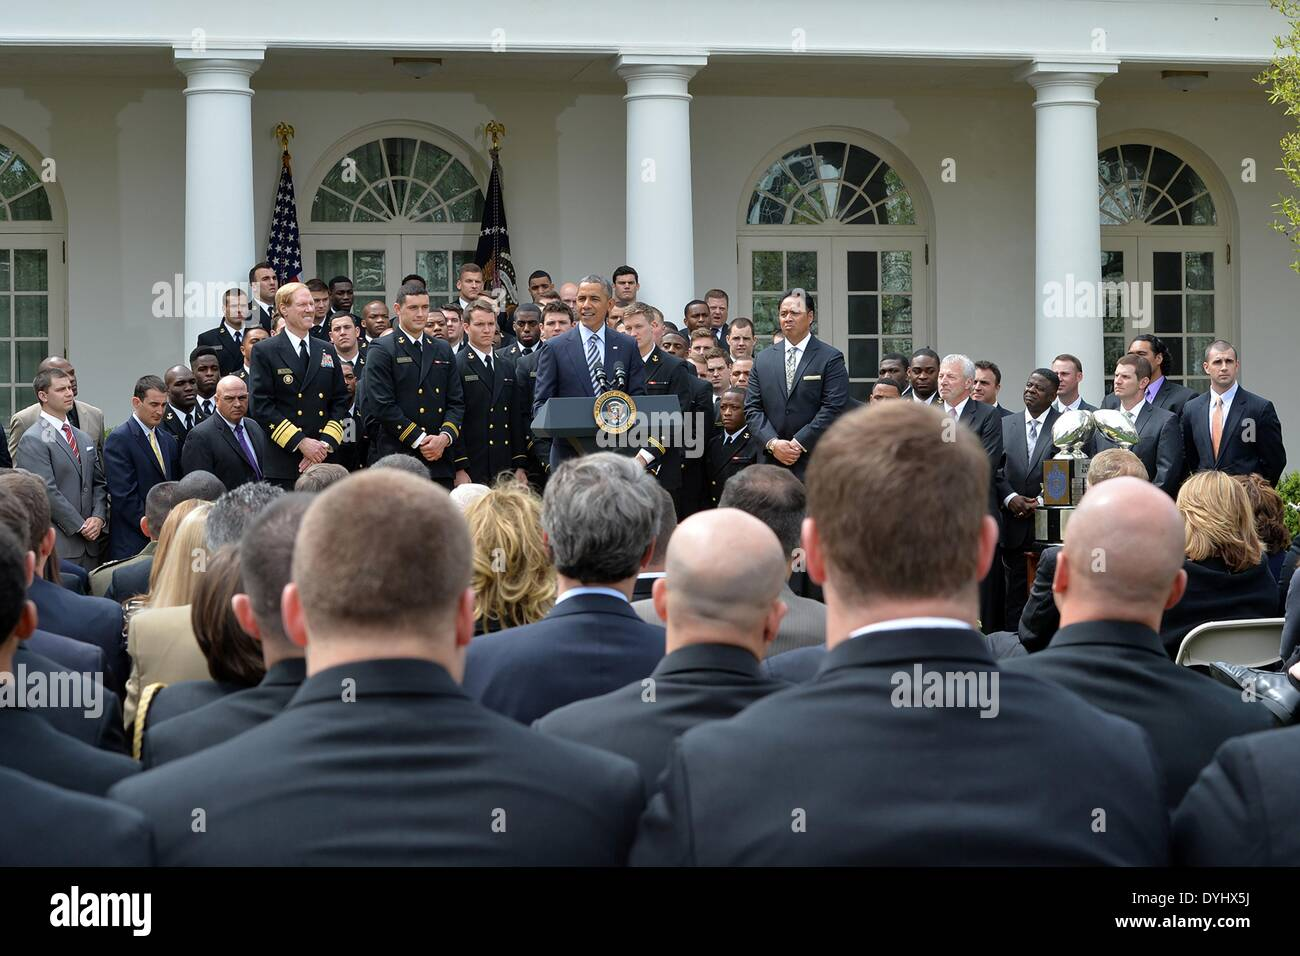 US President Barack Obama congratulates the US Naval Academy football team during an event on the South Lawn of the White House April 18, 2014 in Washington, D.C. The president presented the Navy Midshipmen with the Commander-in-Chief's Trophy, which goes to the Department of Defense academy team with the most victories against its Service rivals. - Stock Image